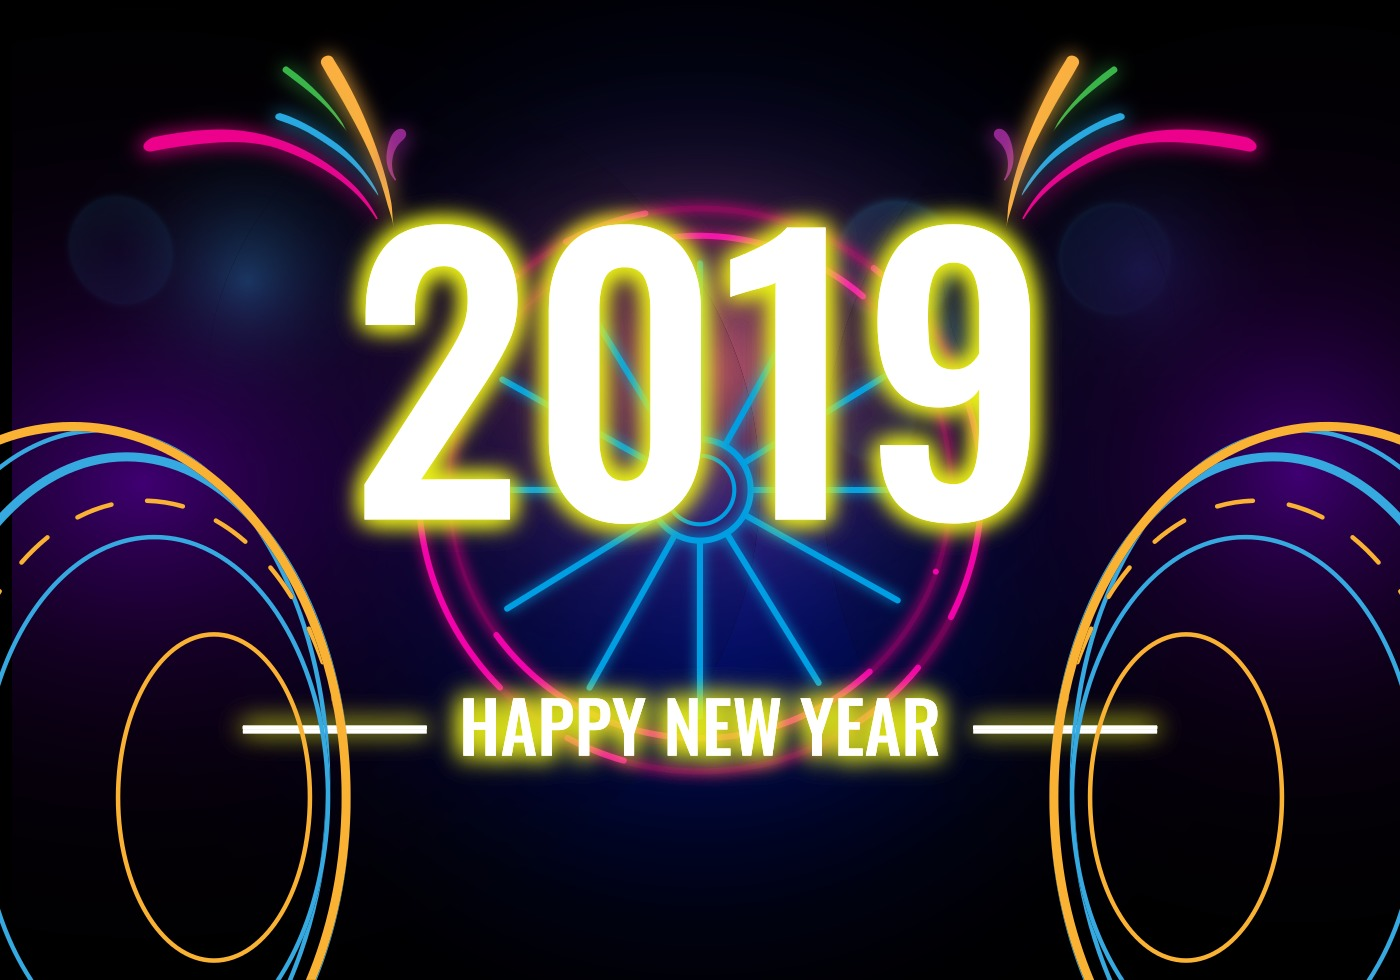 Download 2019 Celebration, Happy New Year Clipart #47300.